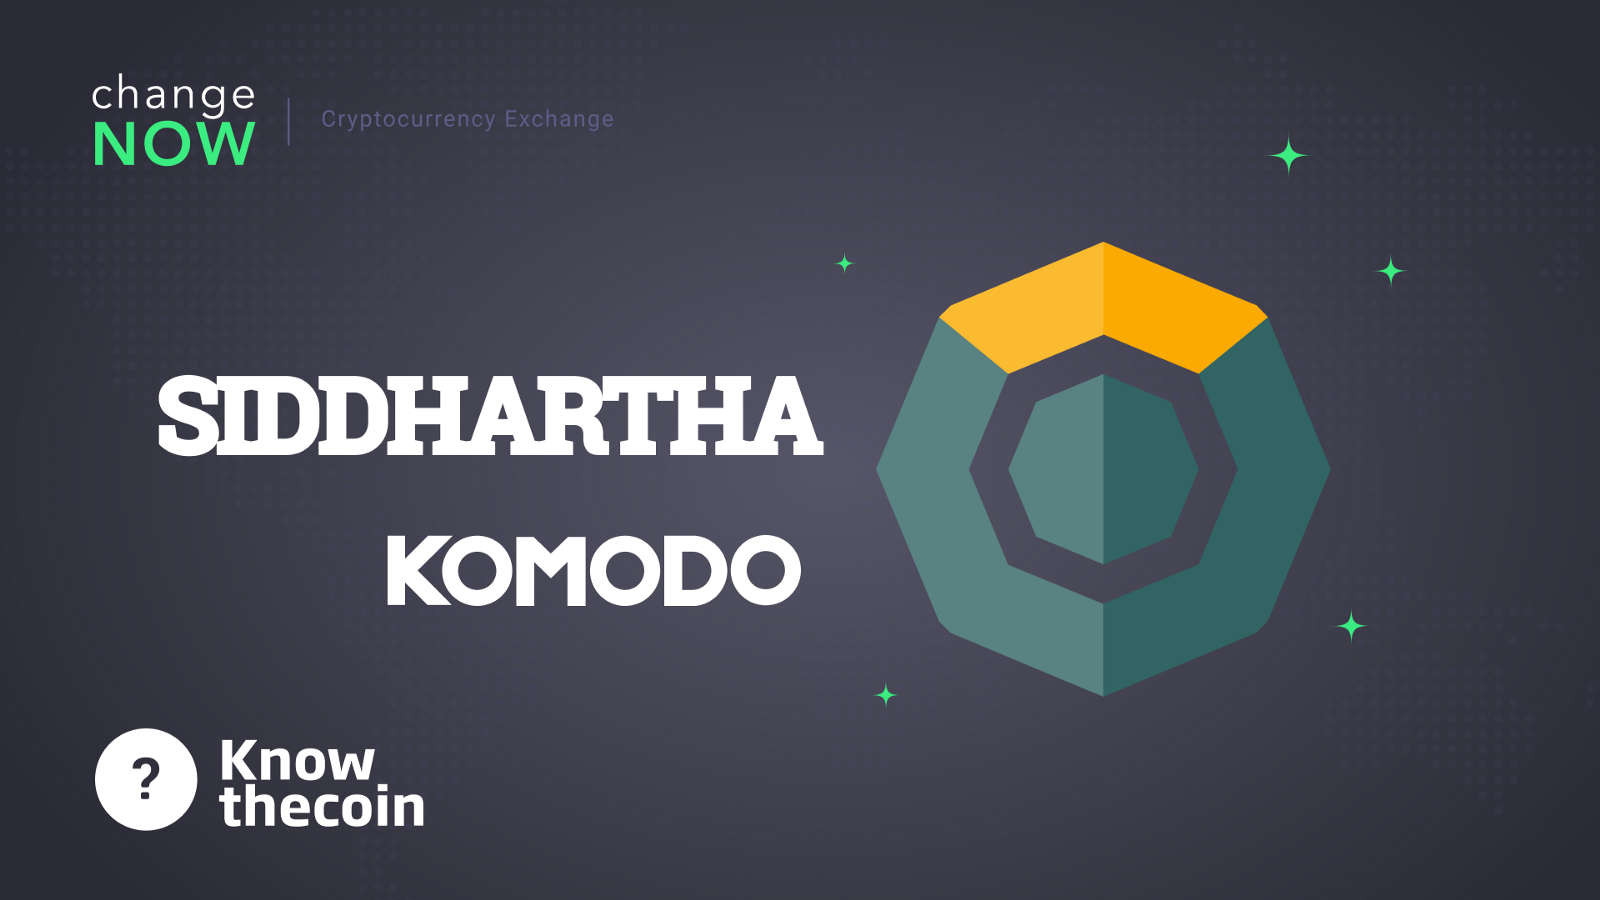 /know-the-coin-interview-with-komodo-white-paper-co-author-17e0150f8ff2 feature image